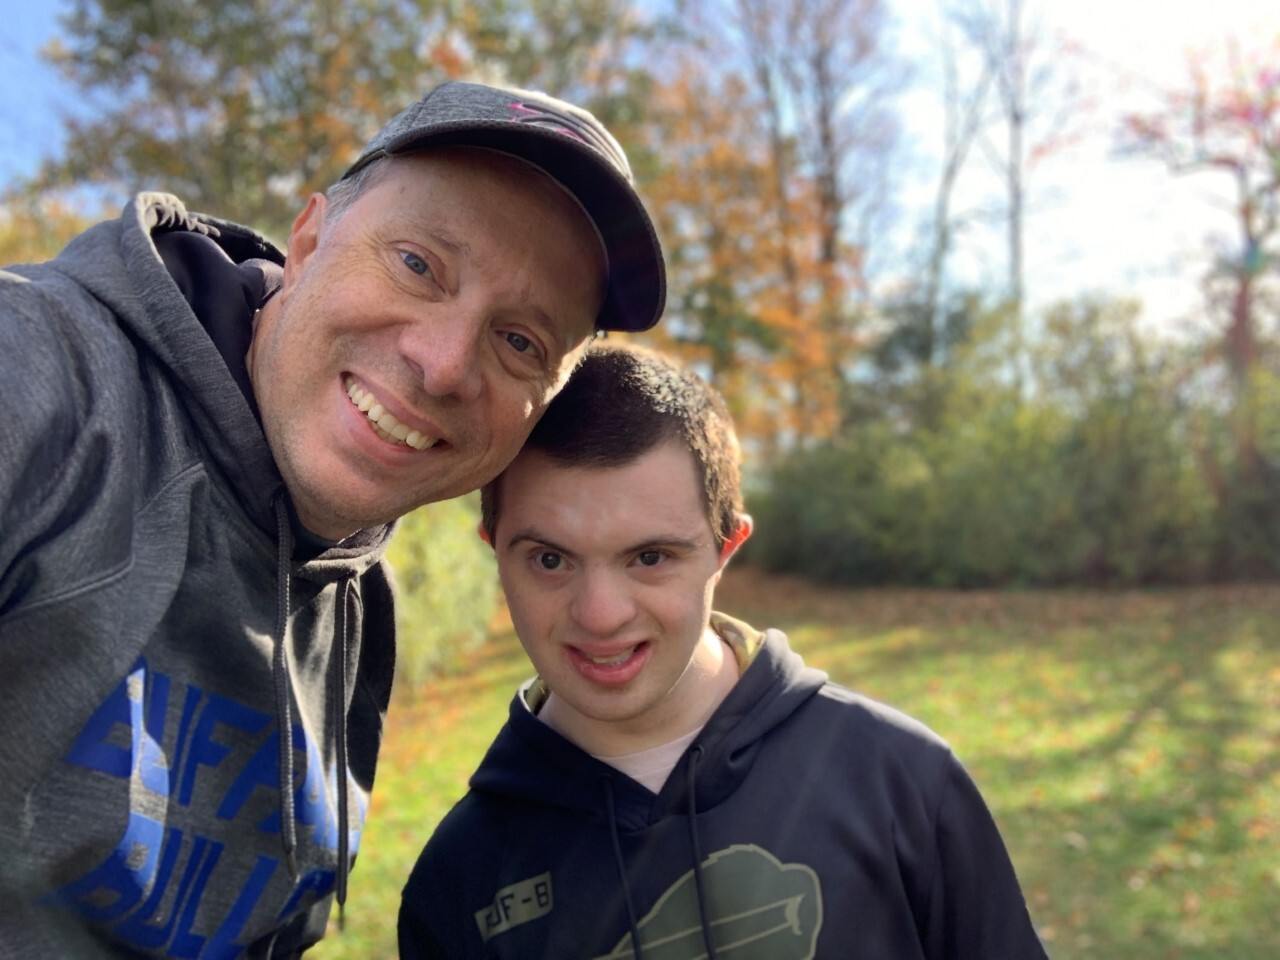 Zolnowski's 23-year-old son lives with Down Syndrome